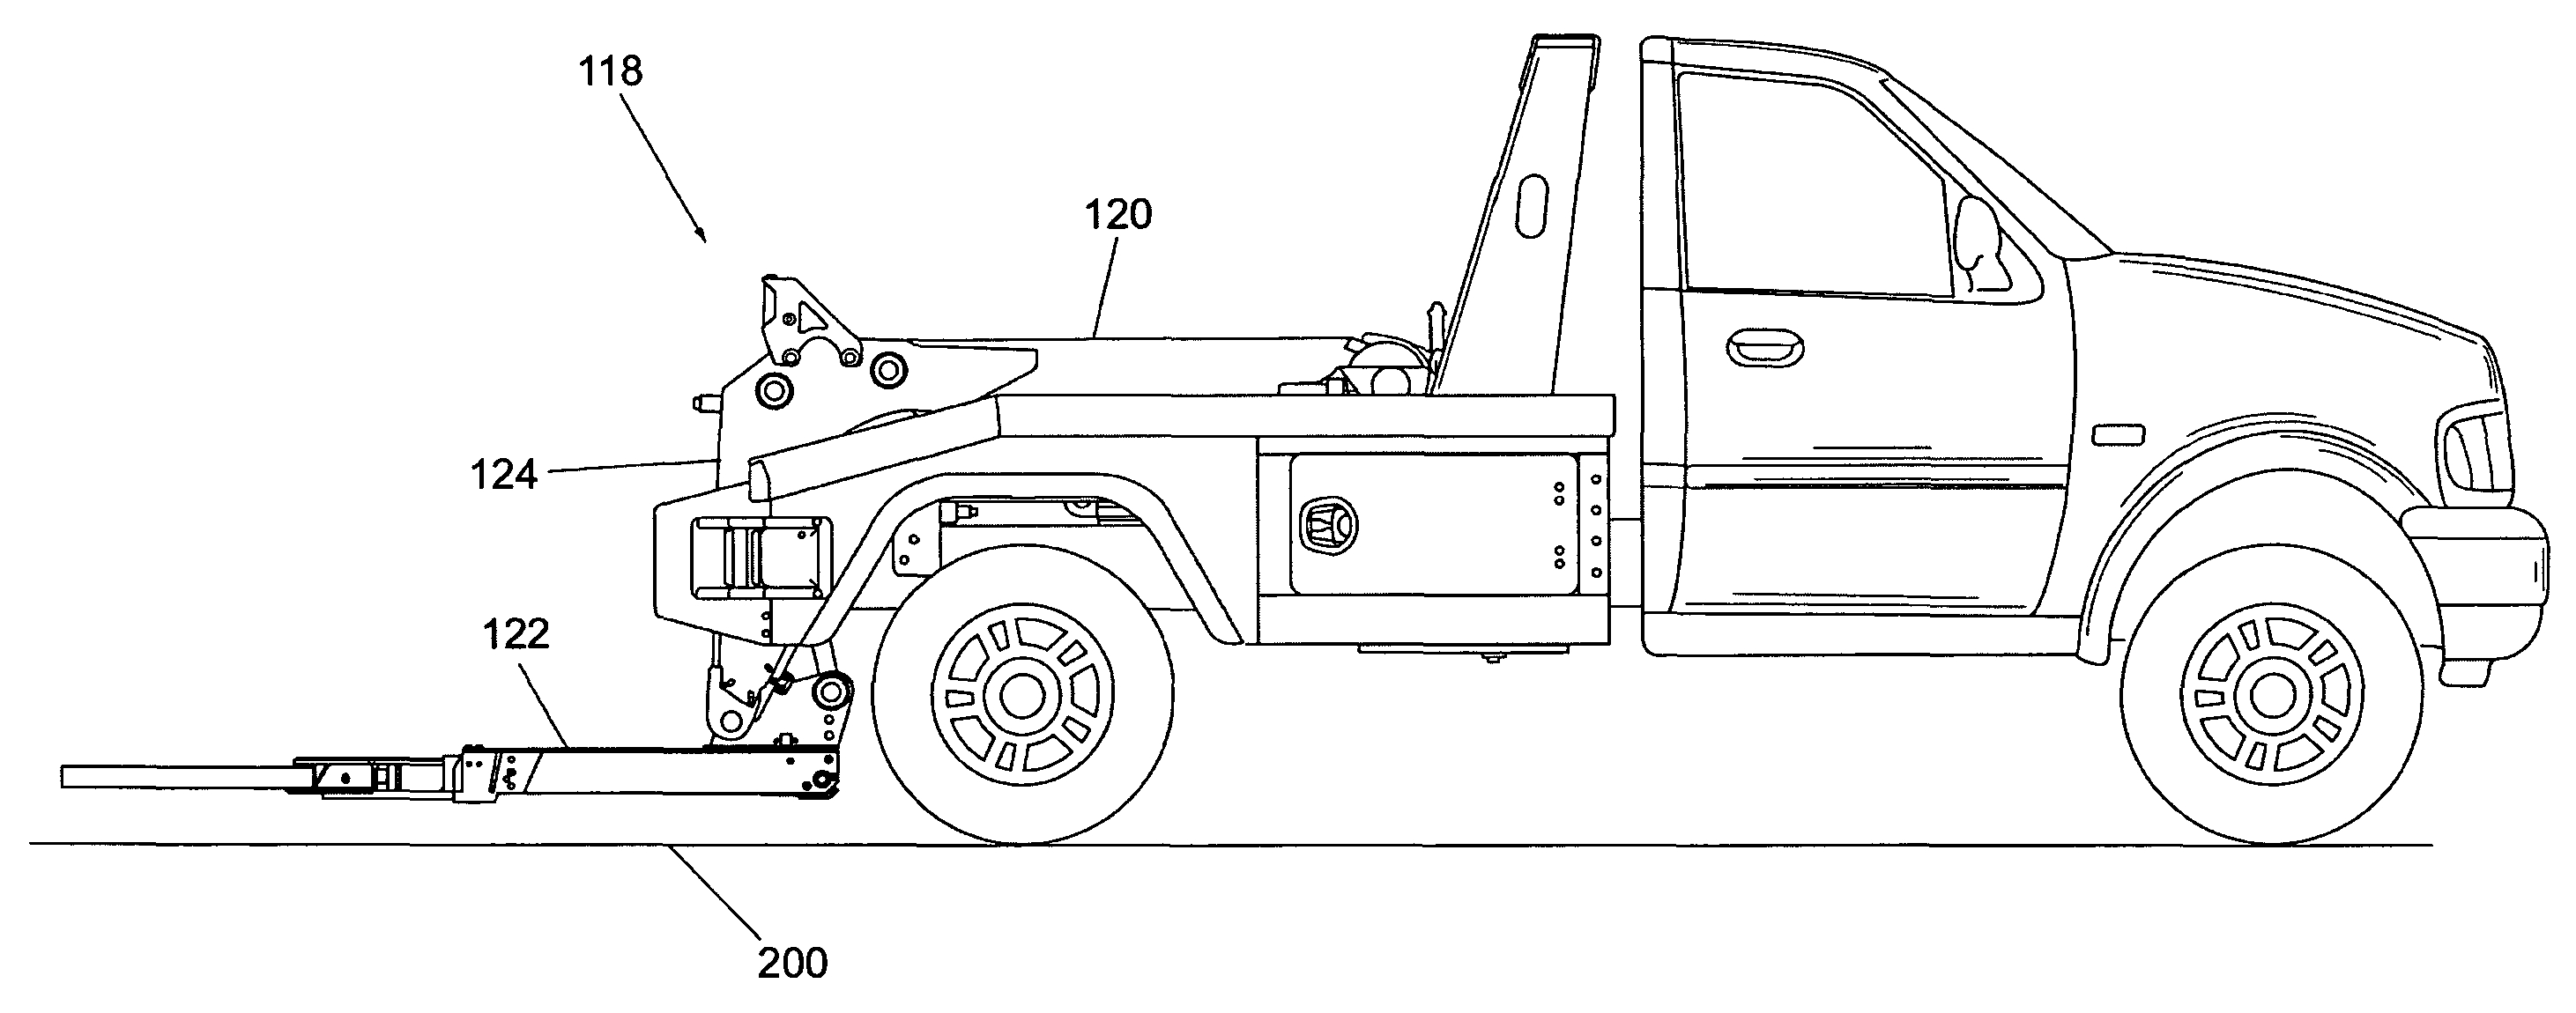 27 tow truck coloring pages pictures